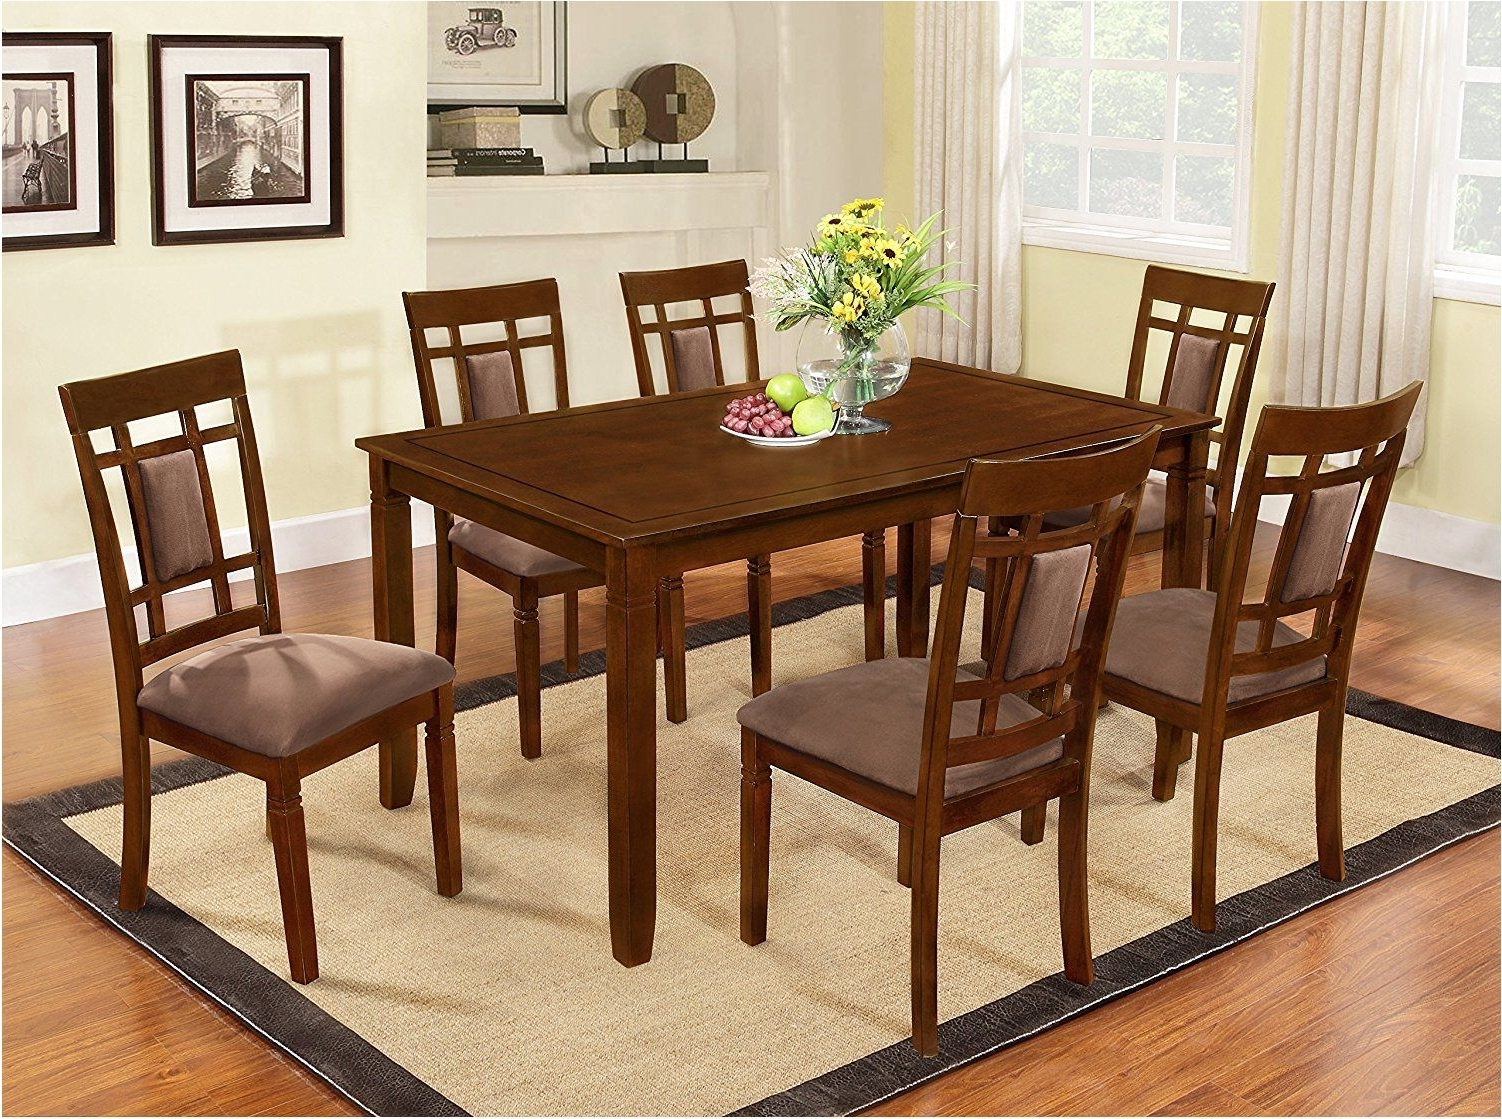 Latest Wooden Dining Sets Inside Marvelous Comfy Wood Dining Table And Chairs Contemporary Black (View 3 of 25)